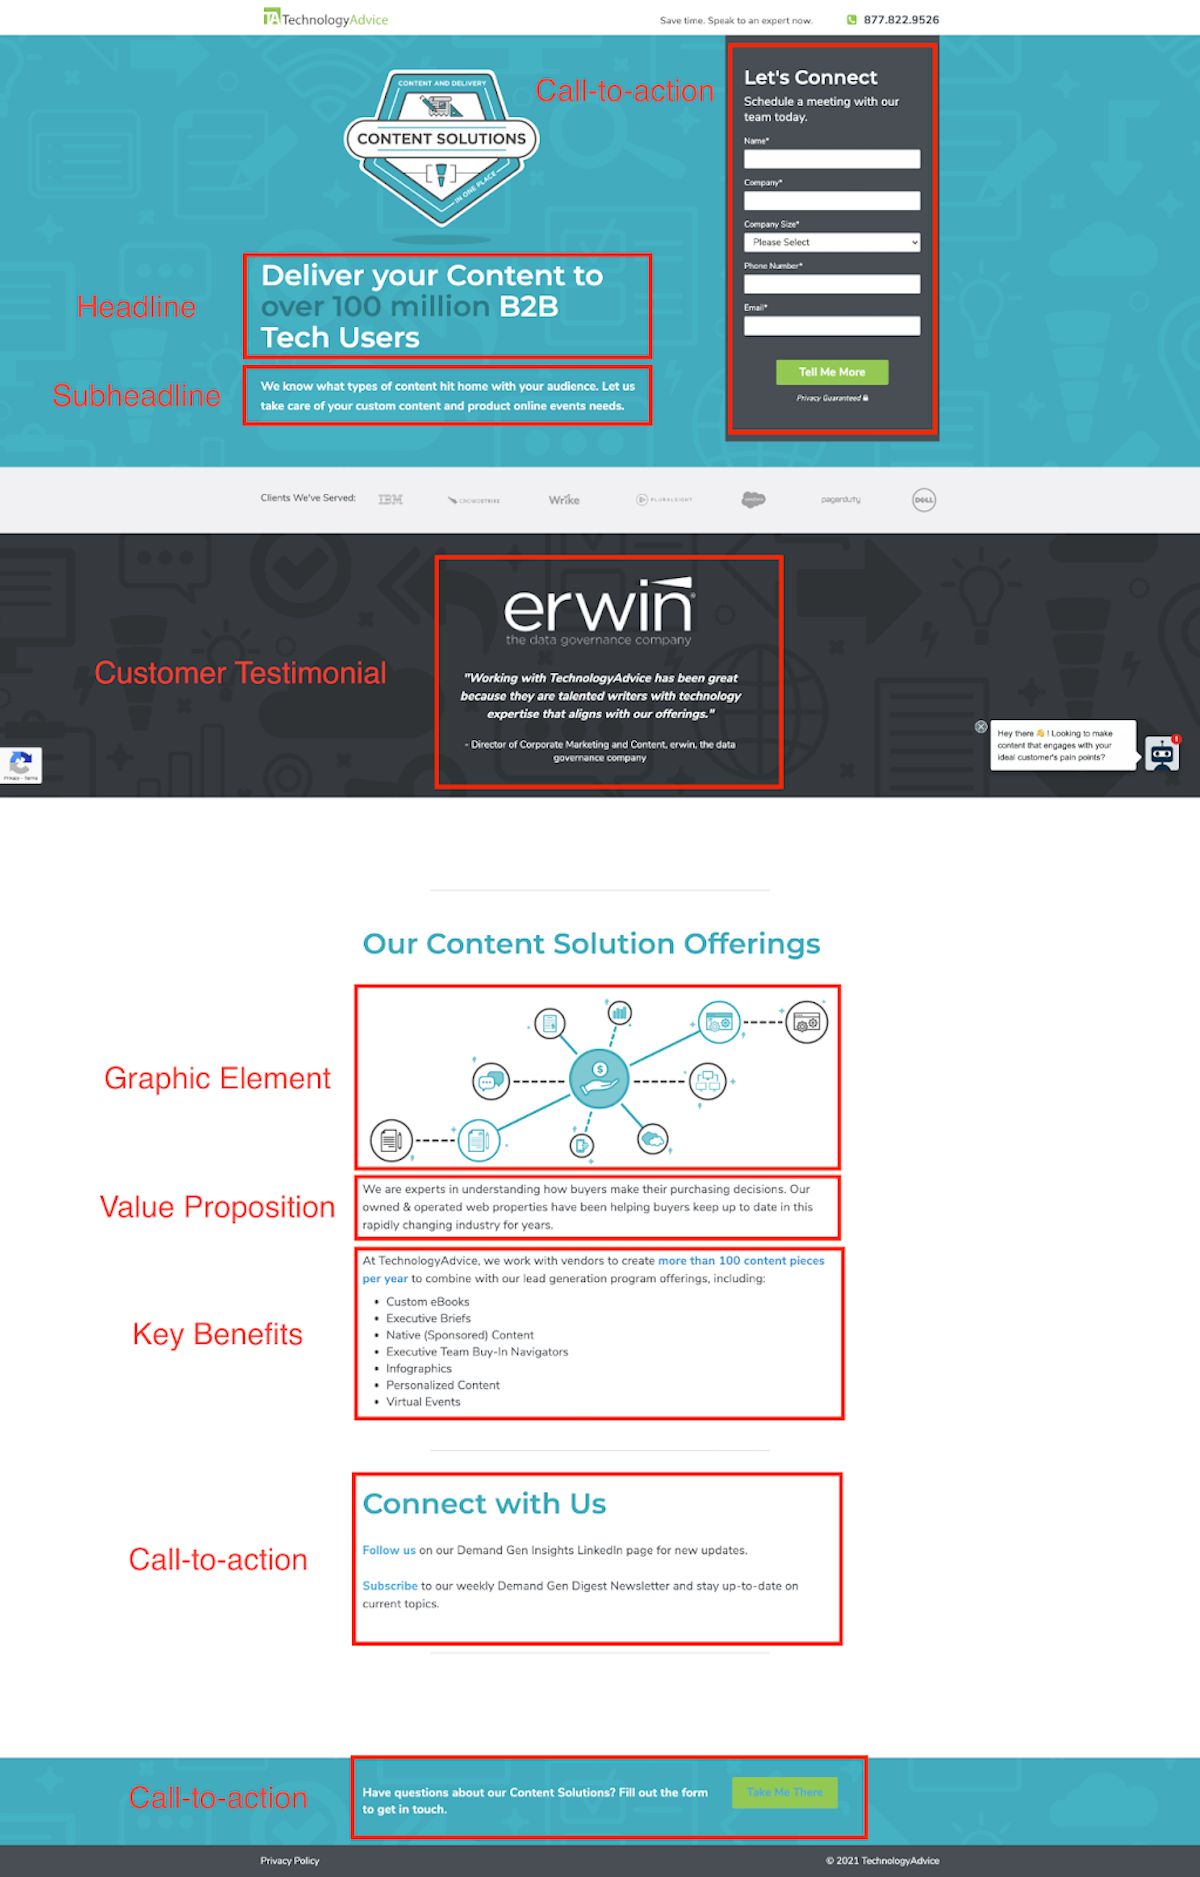 example of TechnologyAdvice landing page.